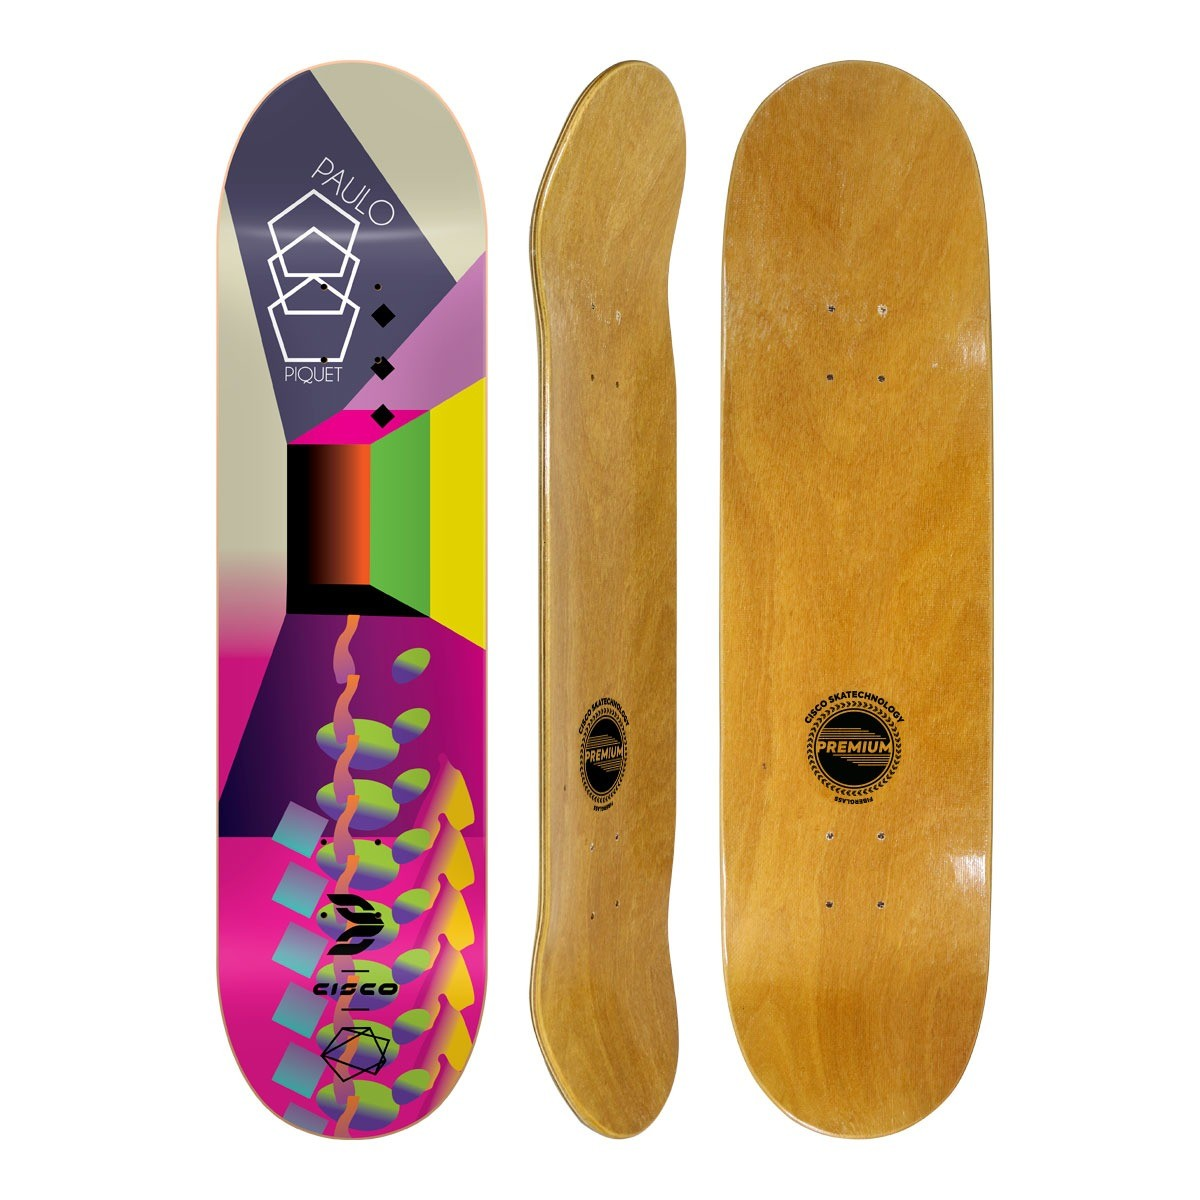 Shape Cisco Skate Fiber Decks Neon Paulo Piquet 8""